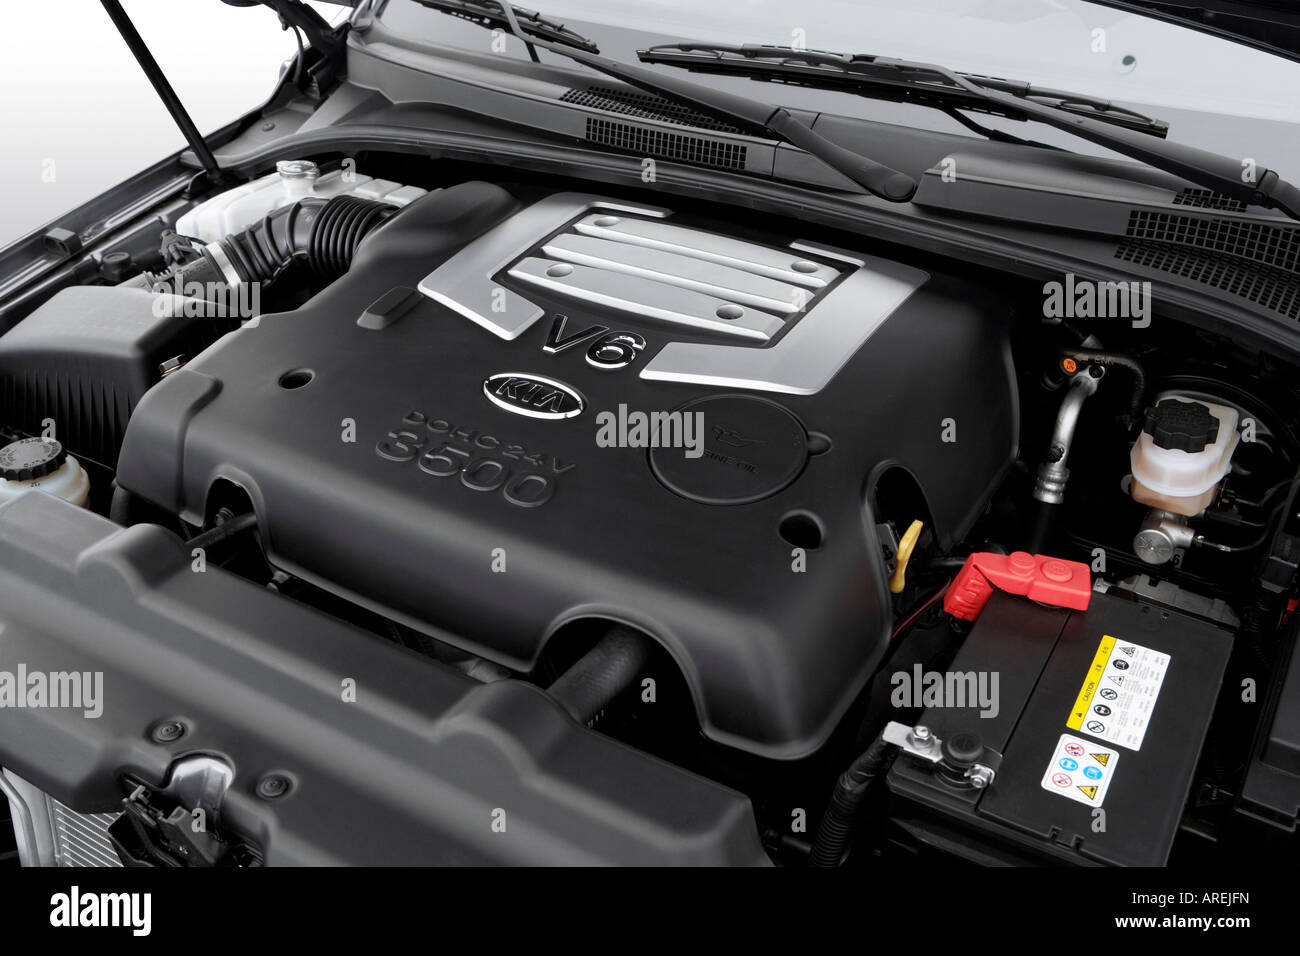 2006 Kia Sorento Engine D4cb Wiring Diagrams Ex In Gray Stock Photo Alamy 1300x956